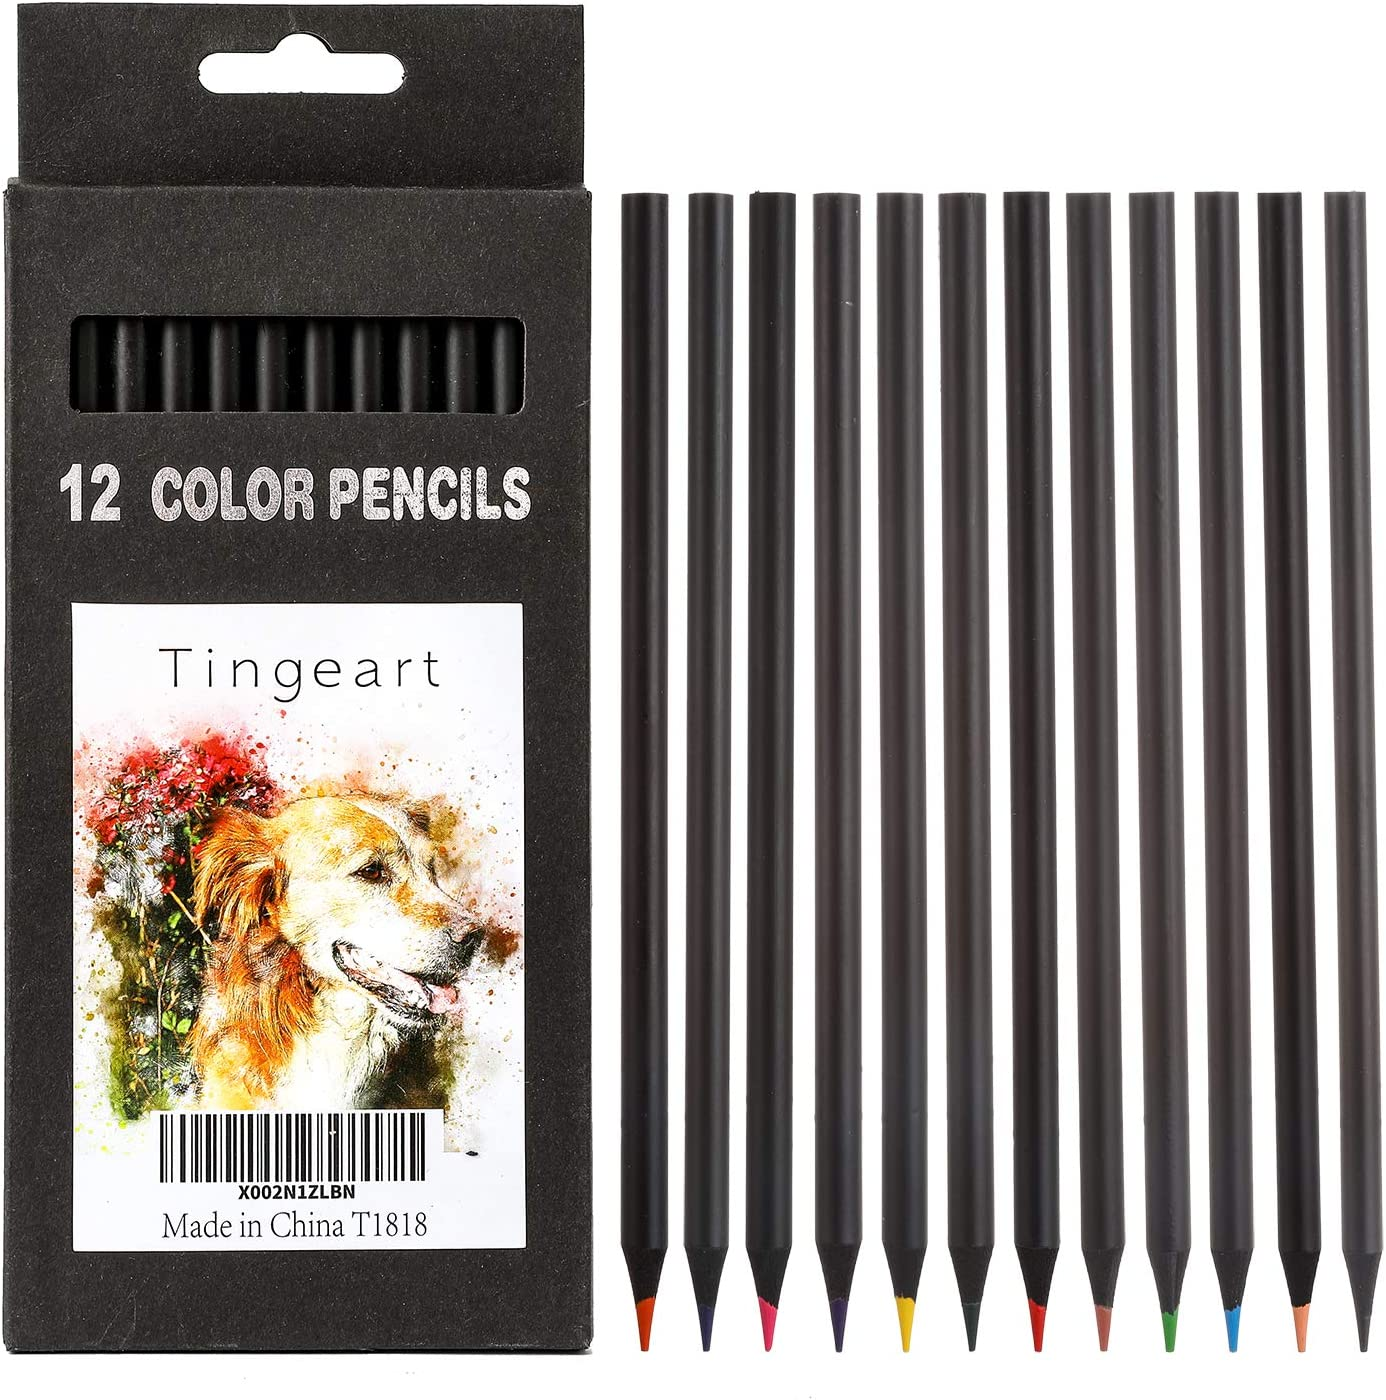 Free shipping anywhere in the nation Colored Pencils 12 Count Set Perfect Ki 55% OFF Adults and Coloring for